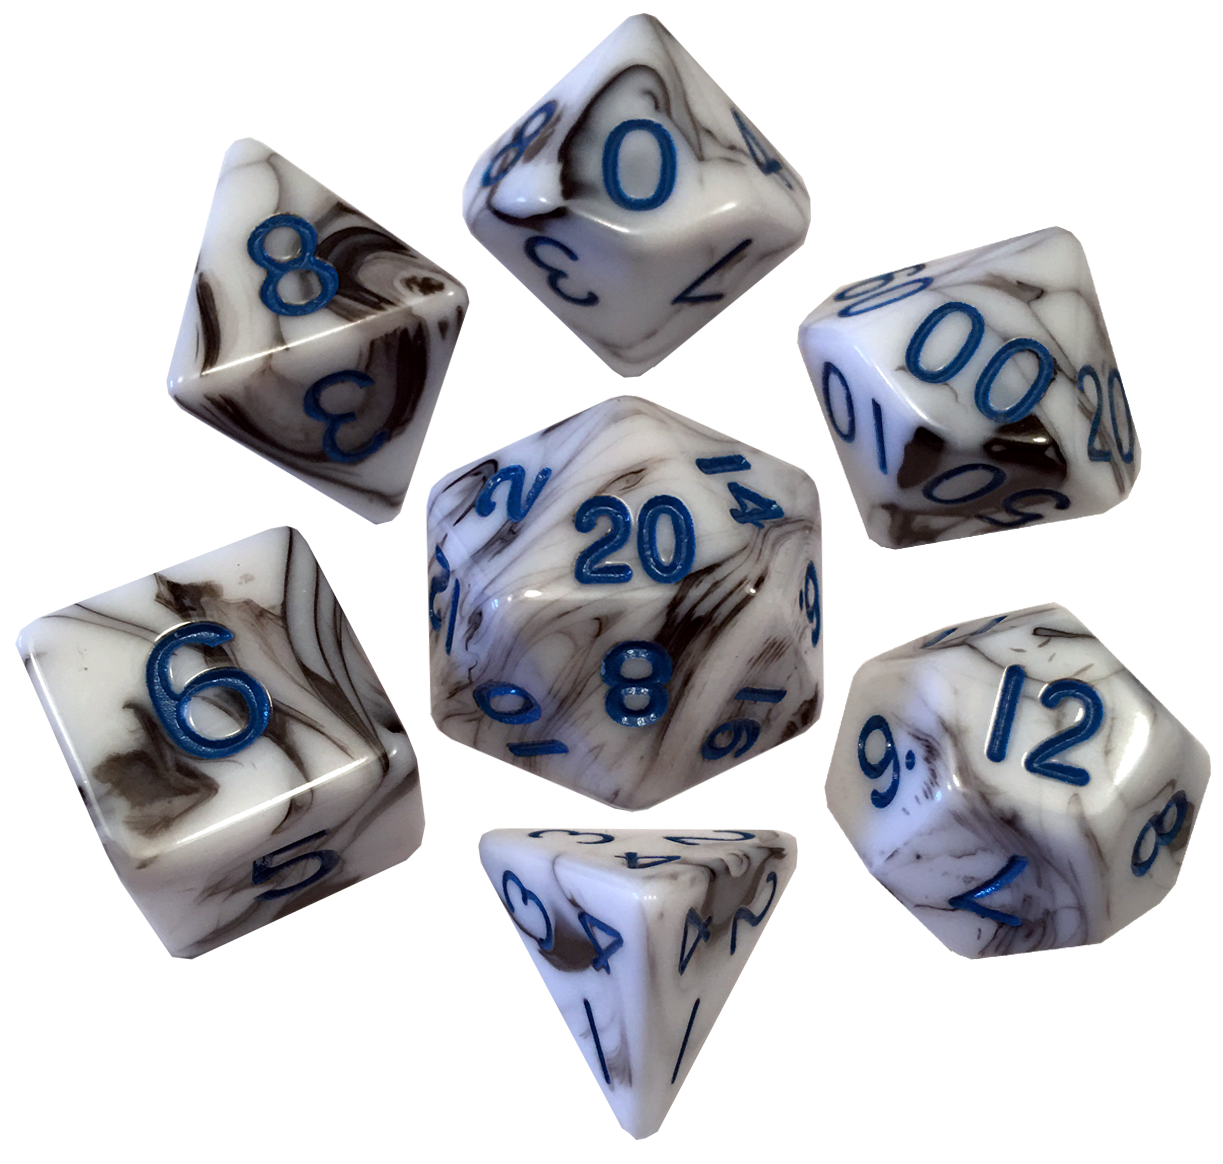 16mm Acrylic Poly Dice Set - Marble with Blue Numbers